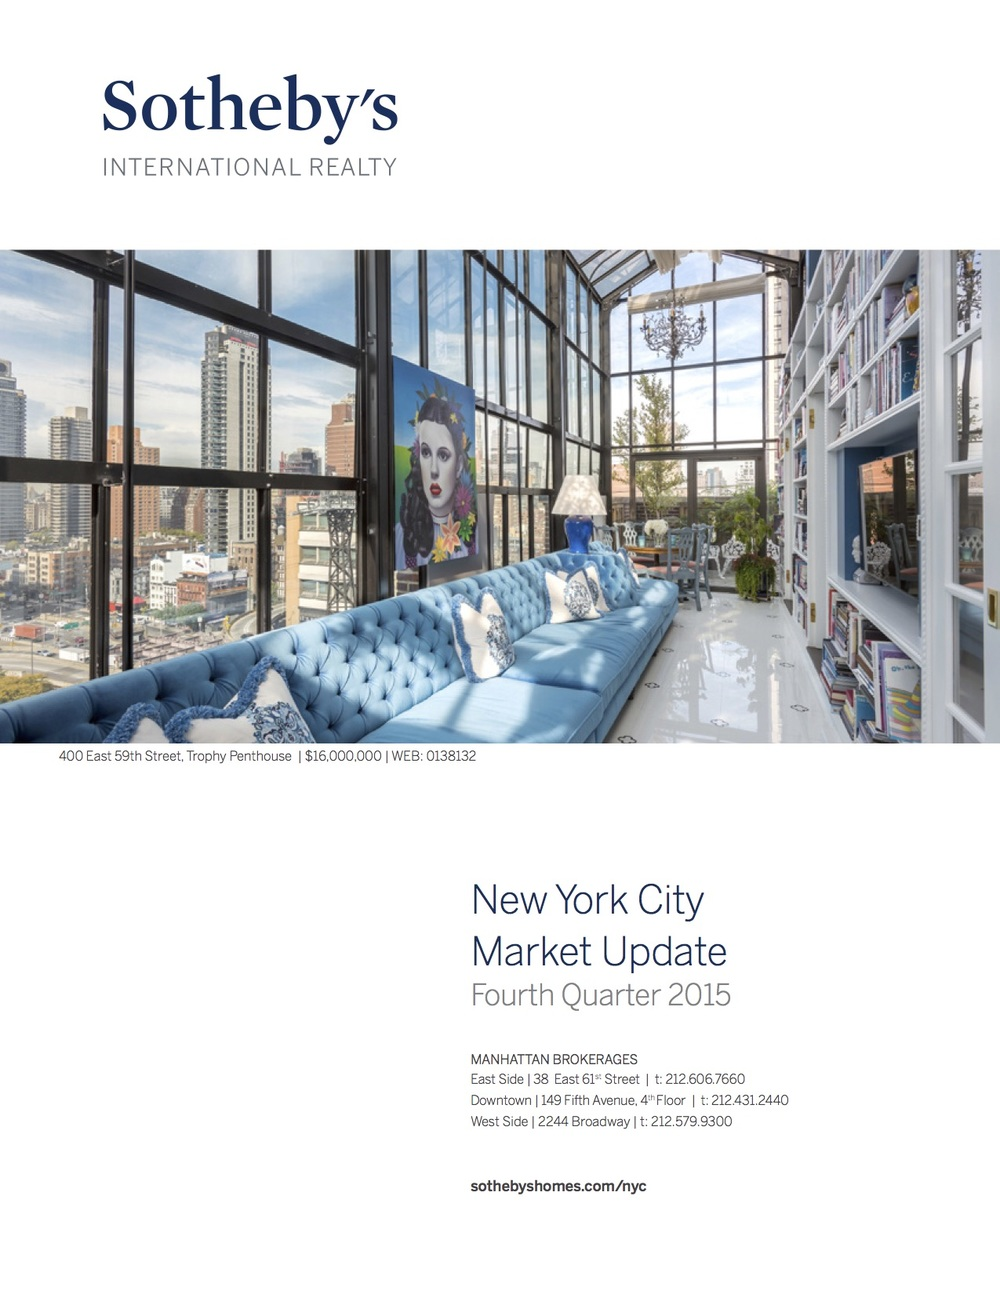 SothebysInternationalRealty_Manhattan_MarketReport_2015_Q4_1.jpg